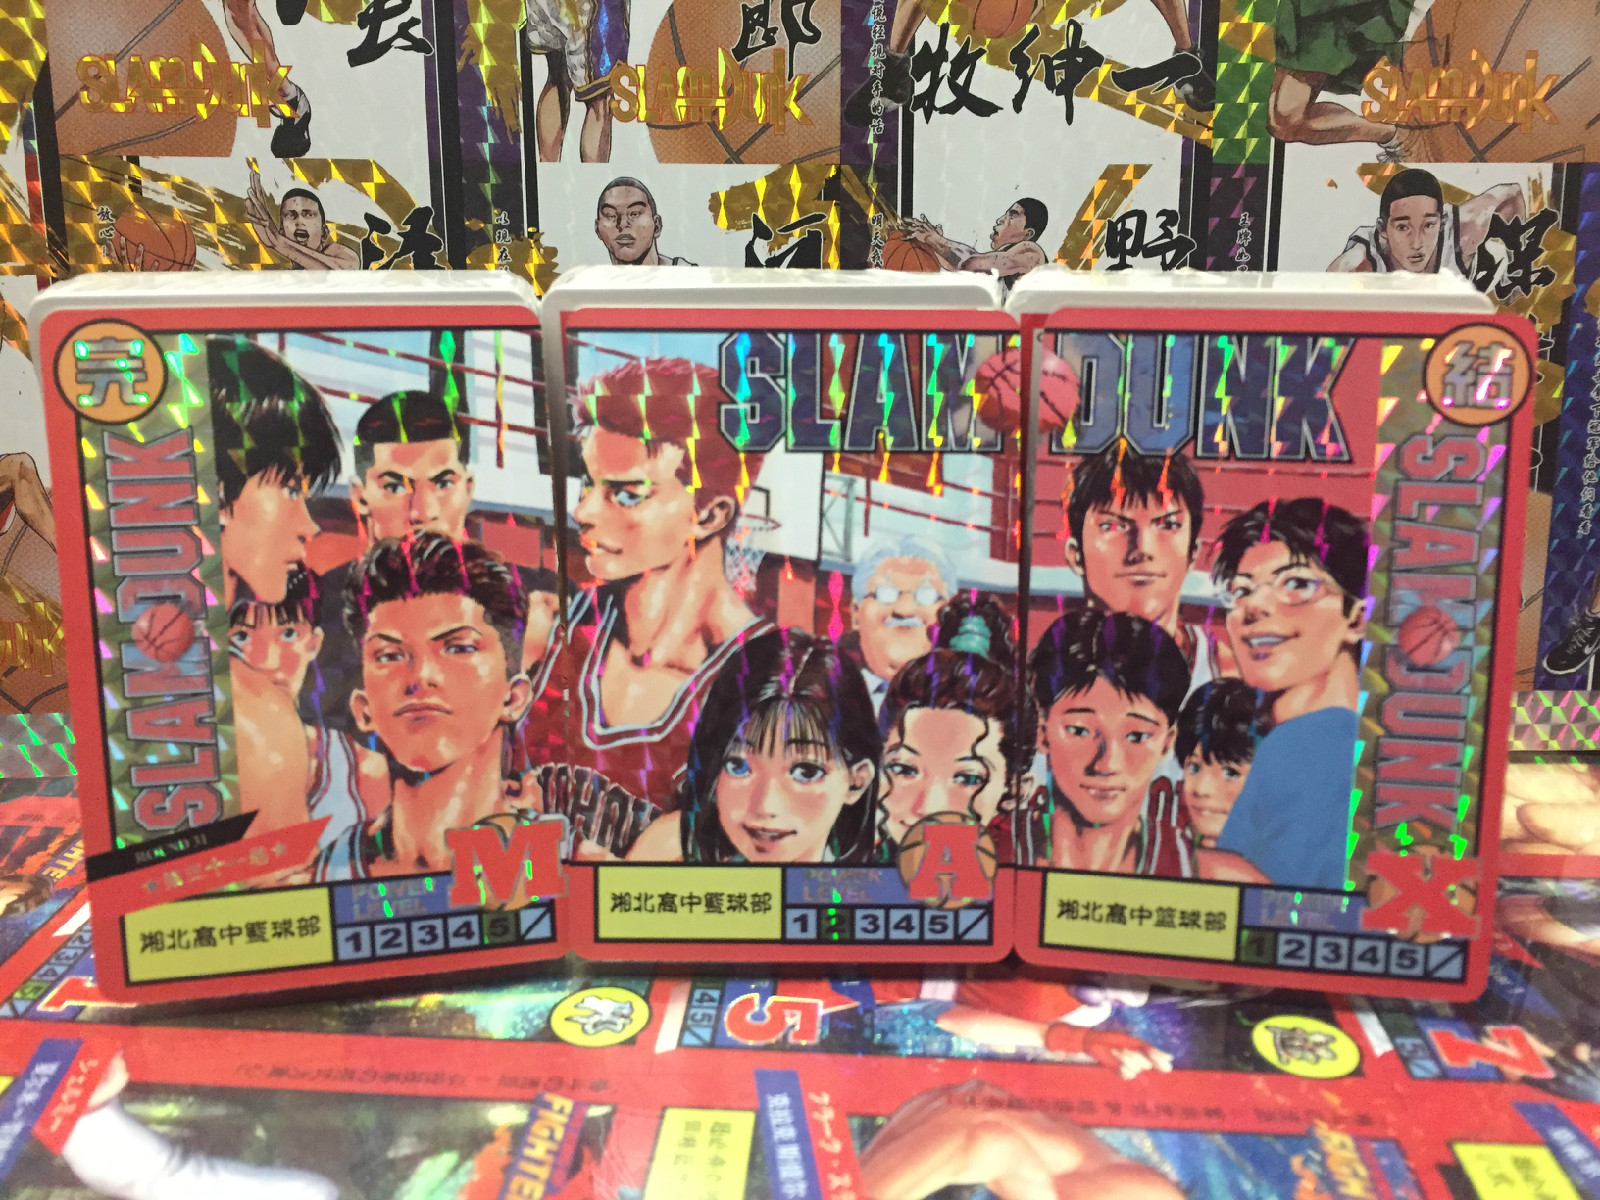 33pcs/set Slam Dunk Childhood Memories Toys Hobbies Hobby Collectibles Game Collection Anime Cards